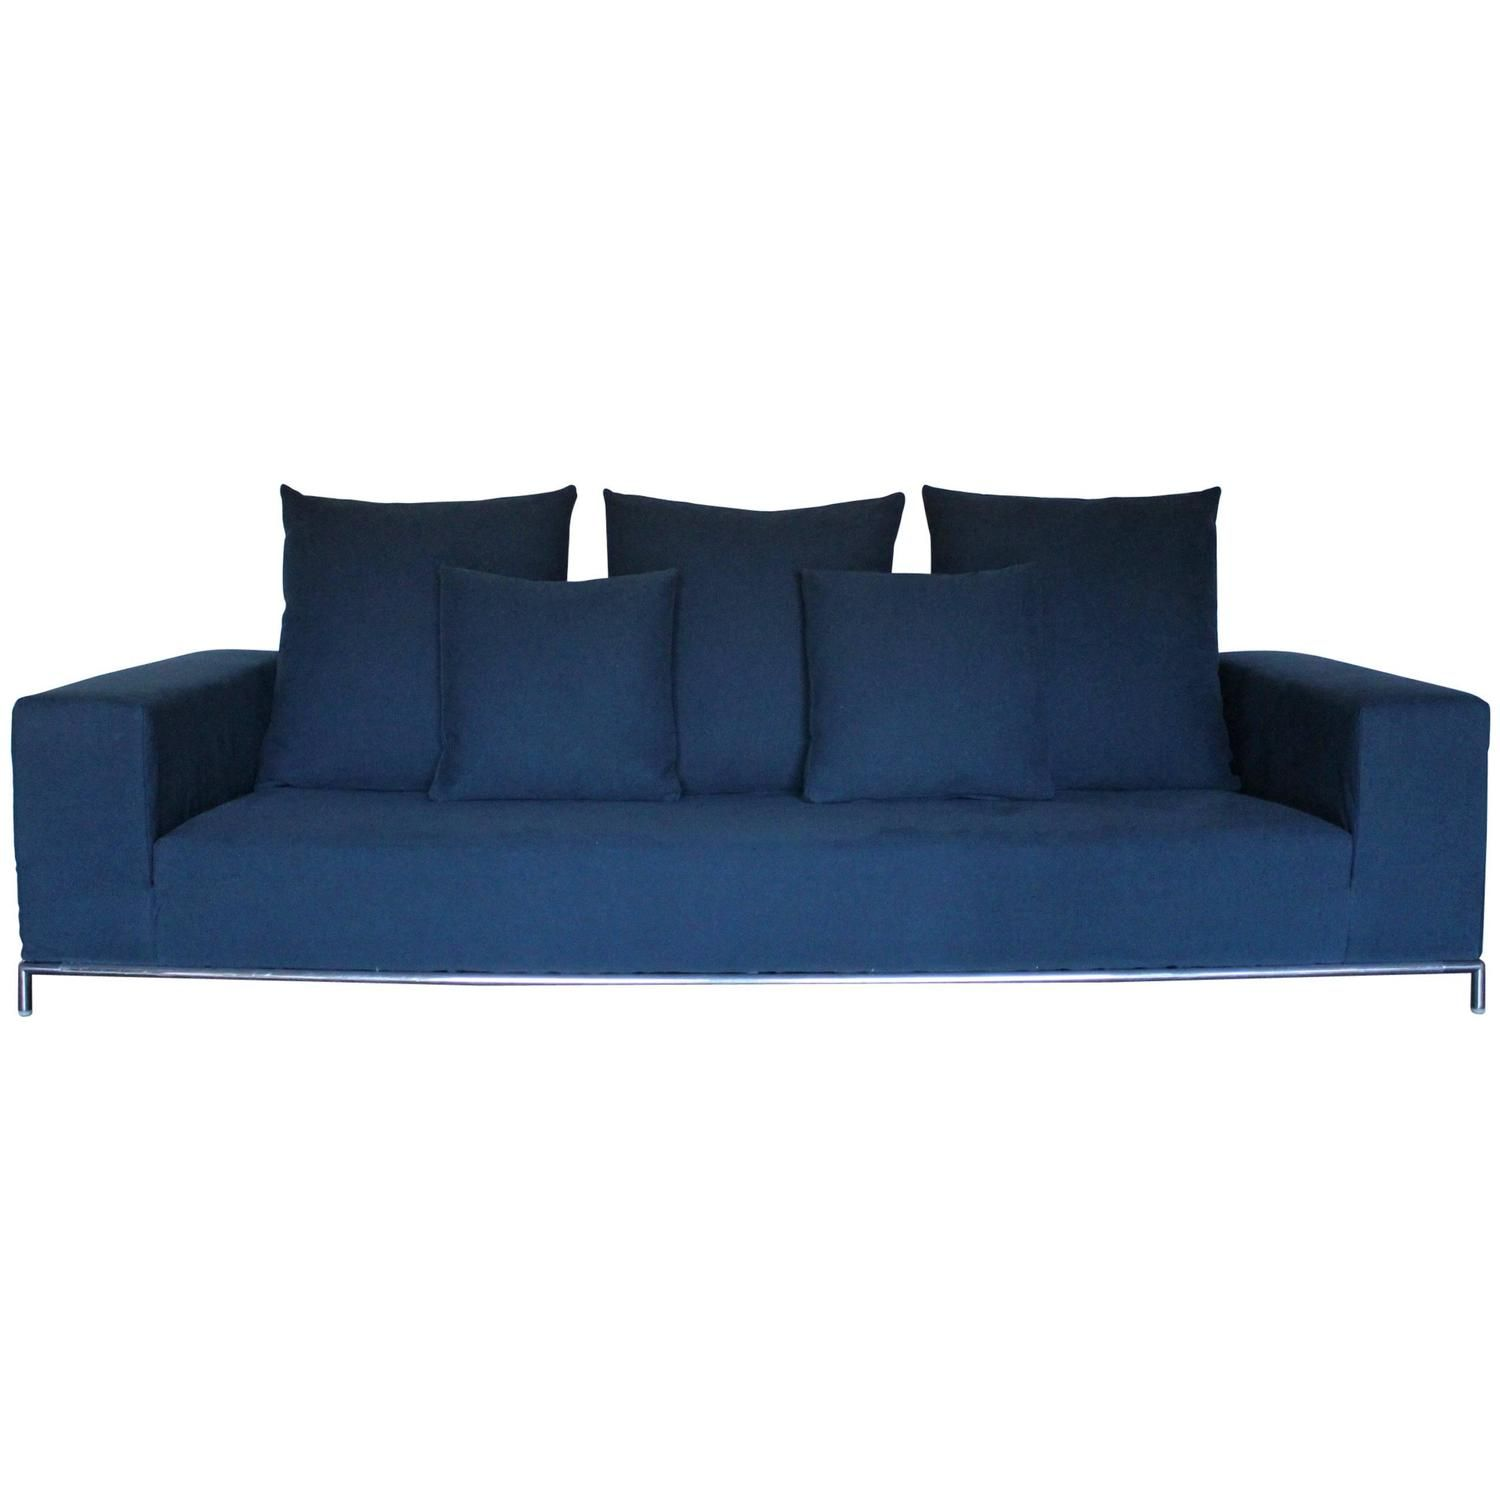 B B Italia George Four Seat Sofa In Mid Blue Linen Fabric By